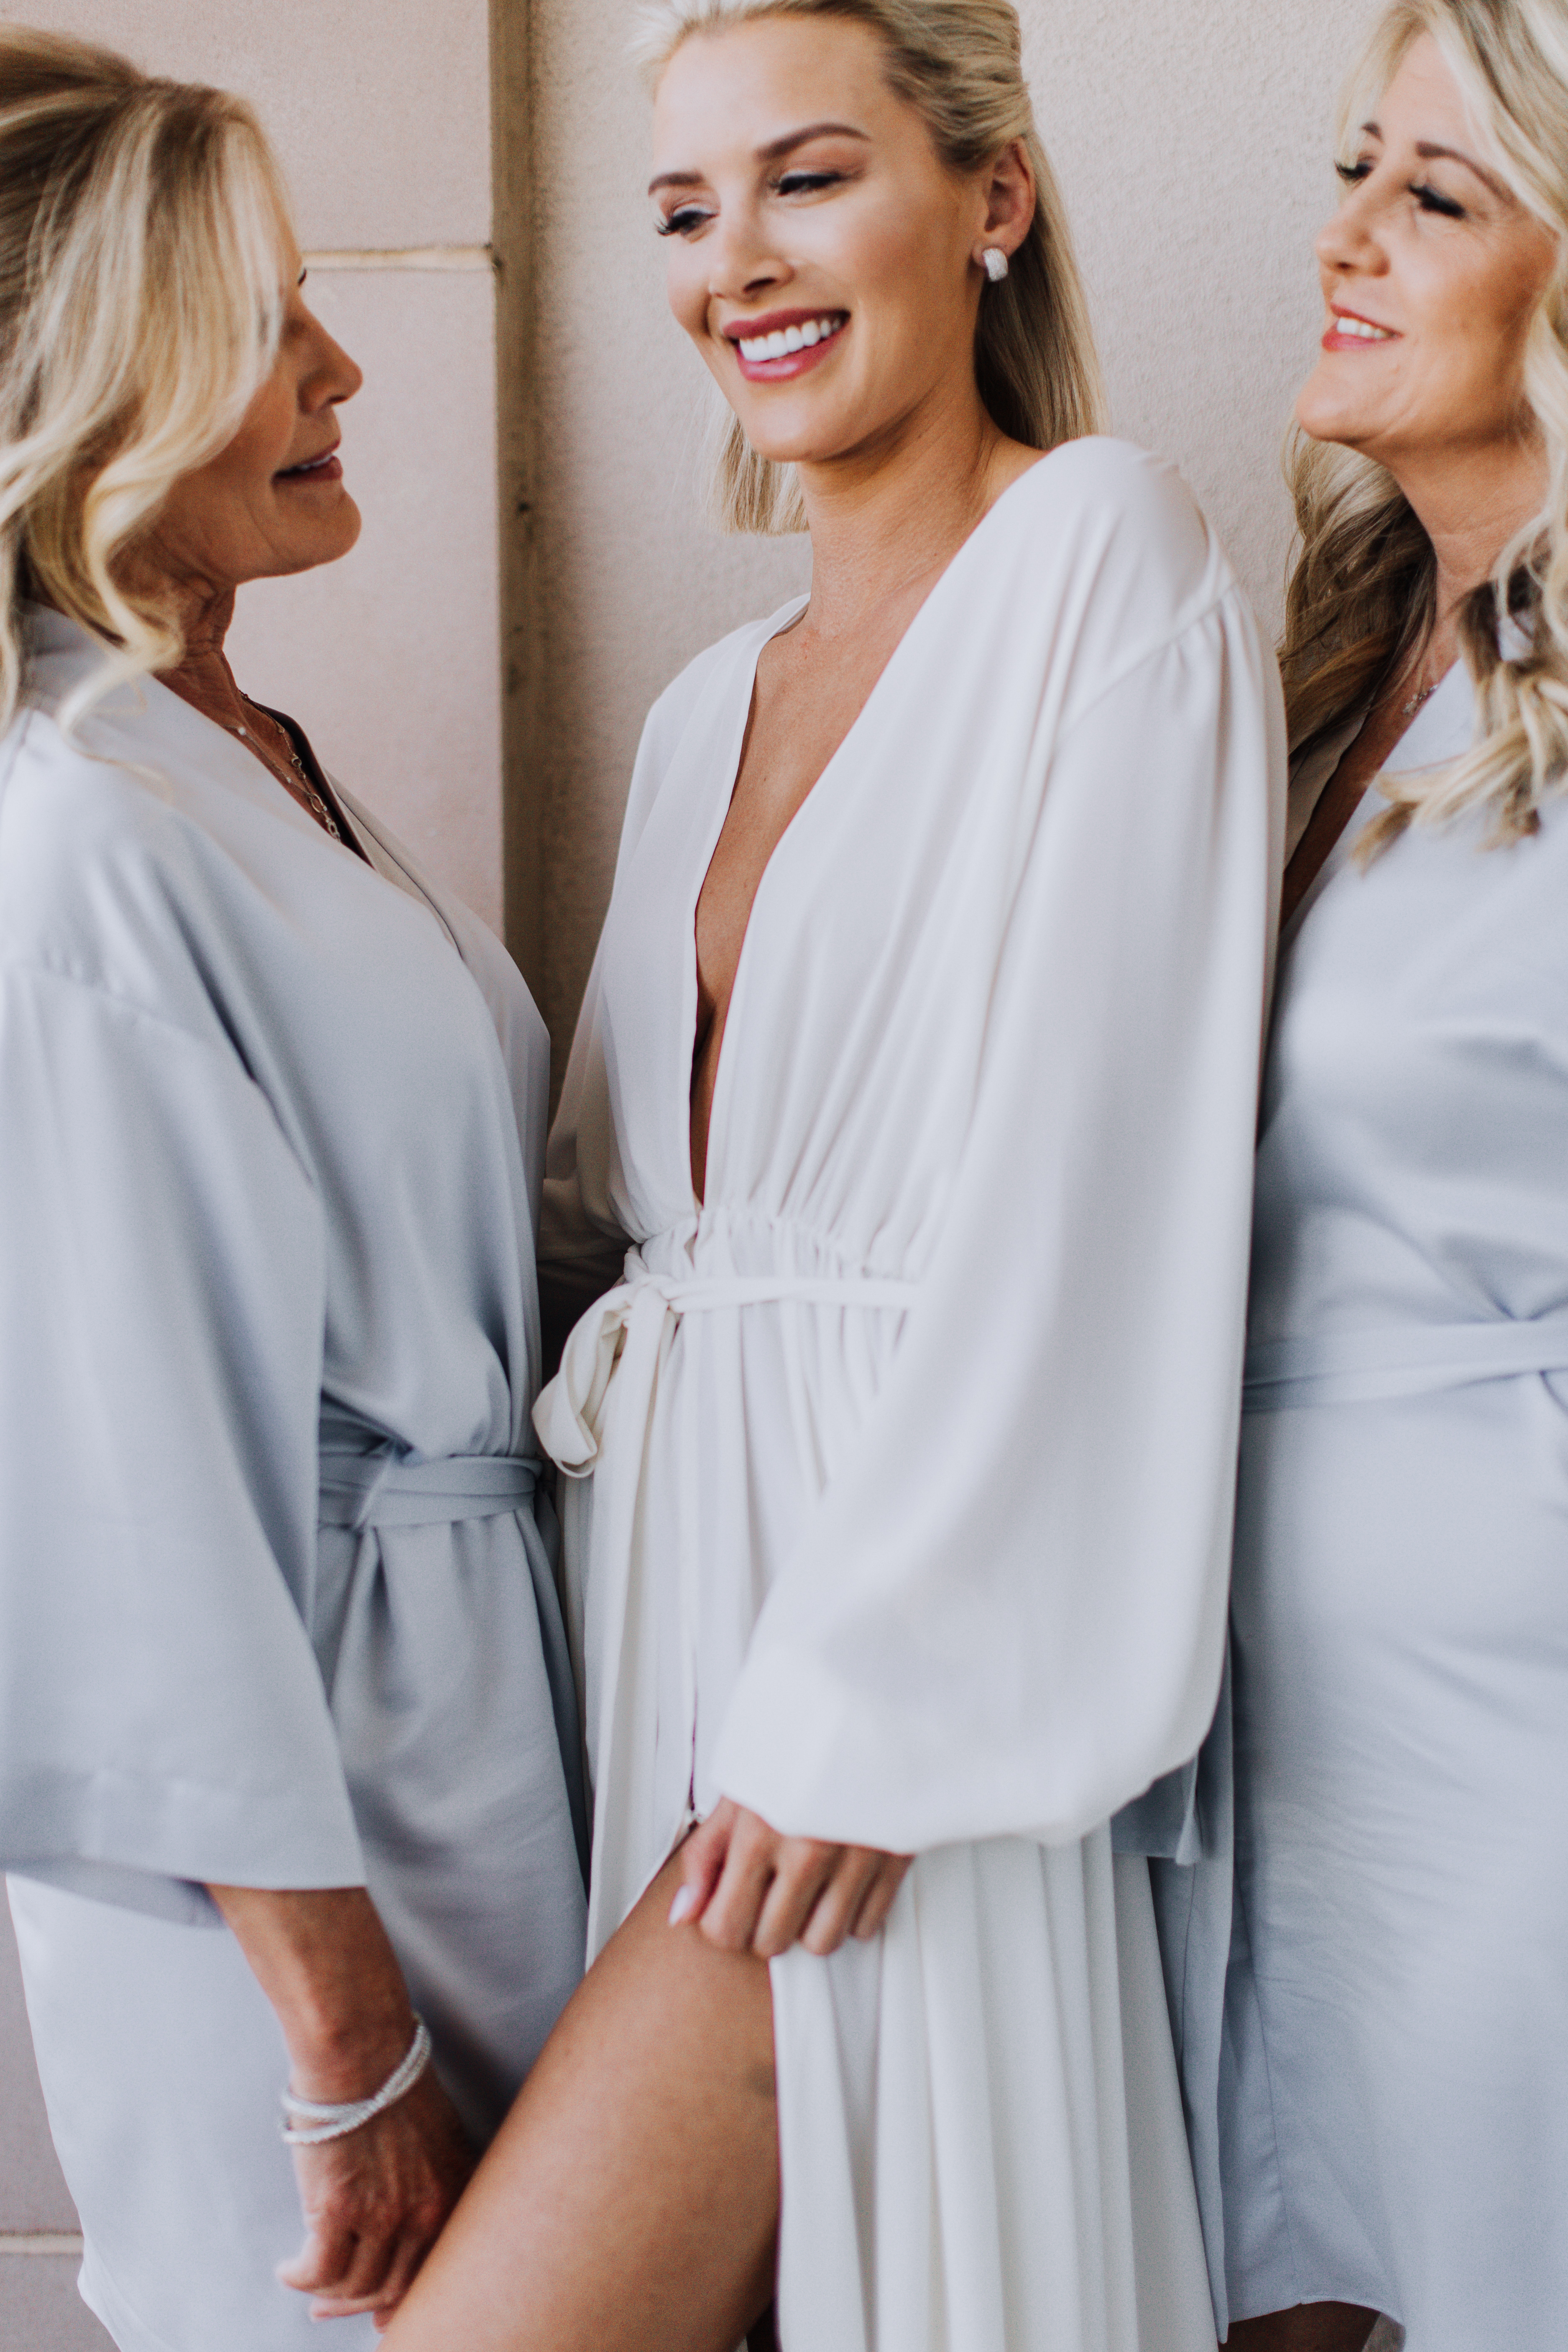 When planning what to gift my bridesmaids, I thought of their favorite things. Like me, my friends are very into fashion and have a classic style.